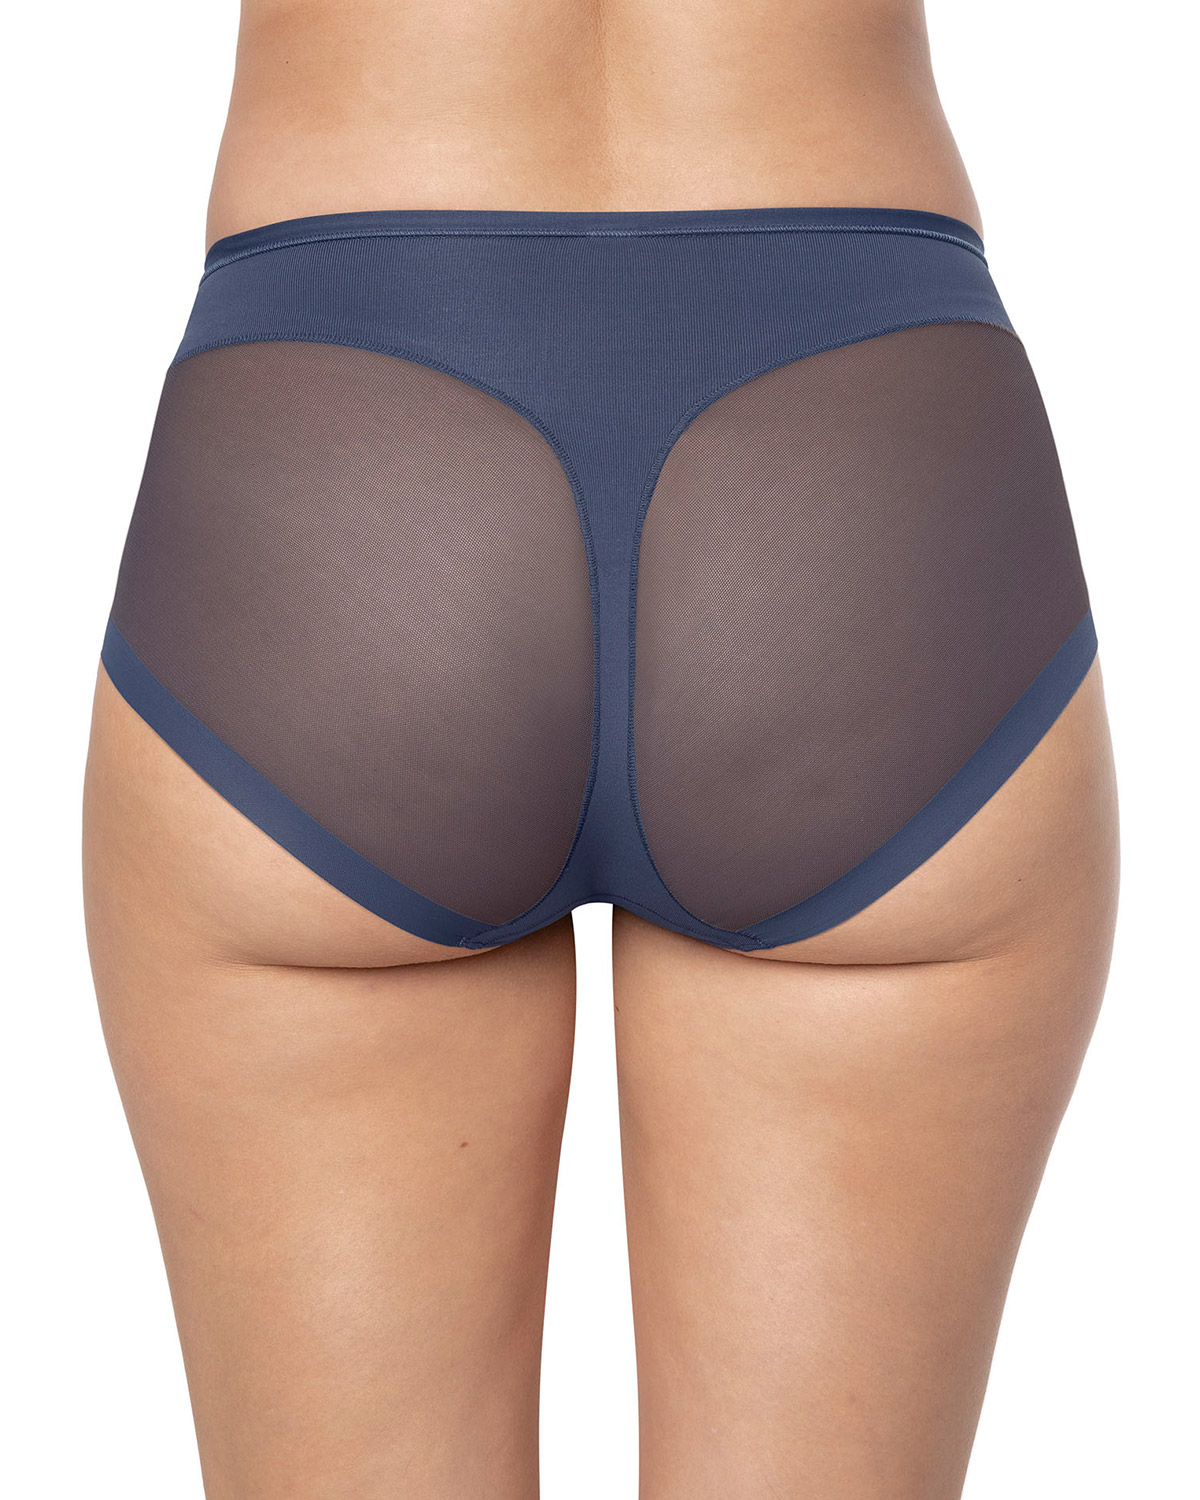 truly invisible panty shaper-543- Blue-MainImage